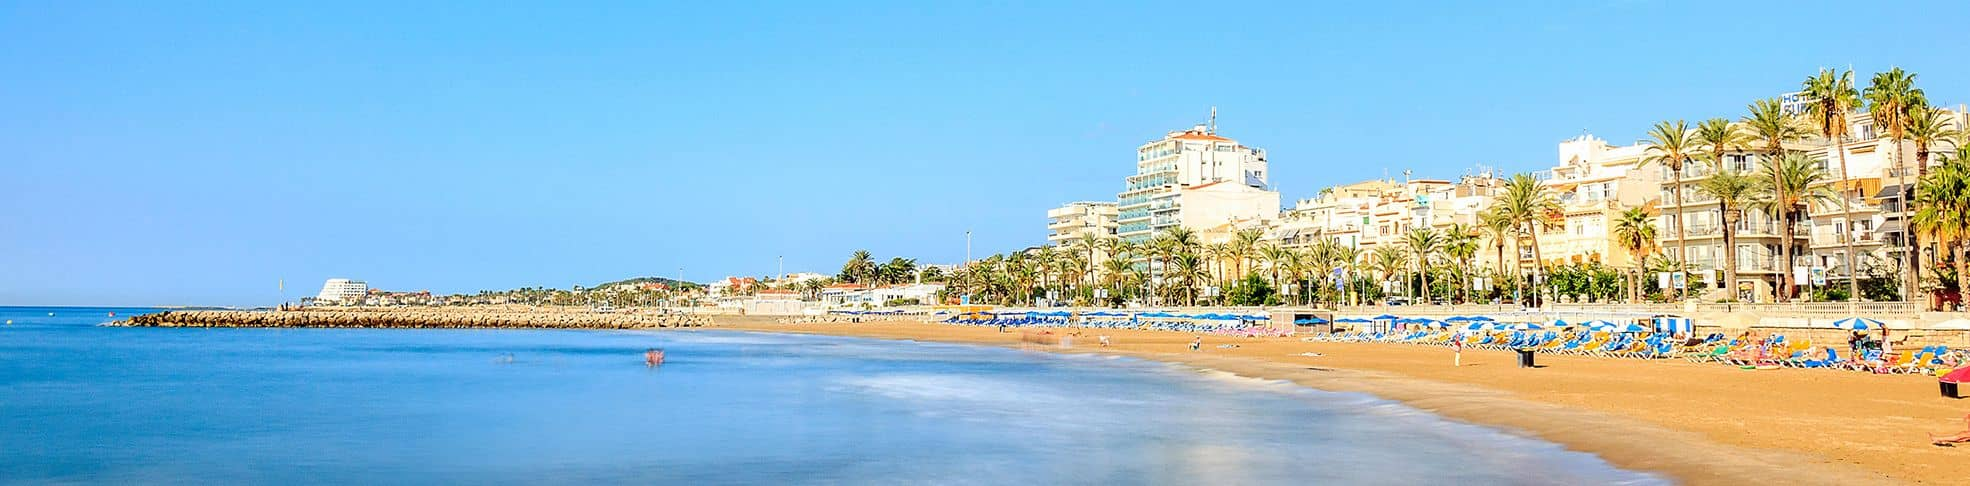 5148bd0a5b Book your 2019 holiday to Costa Dorada with deposits from £49 pp